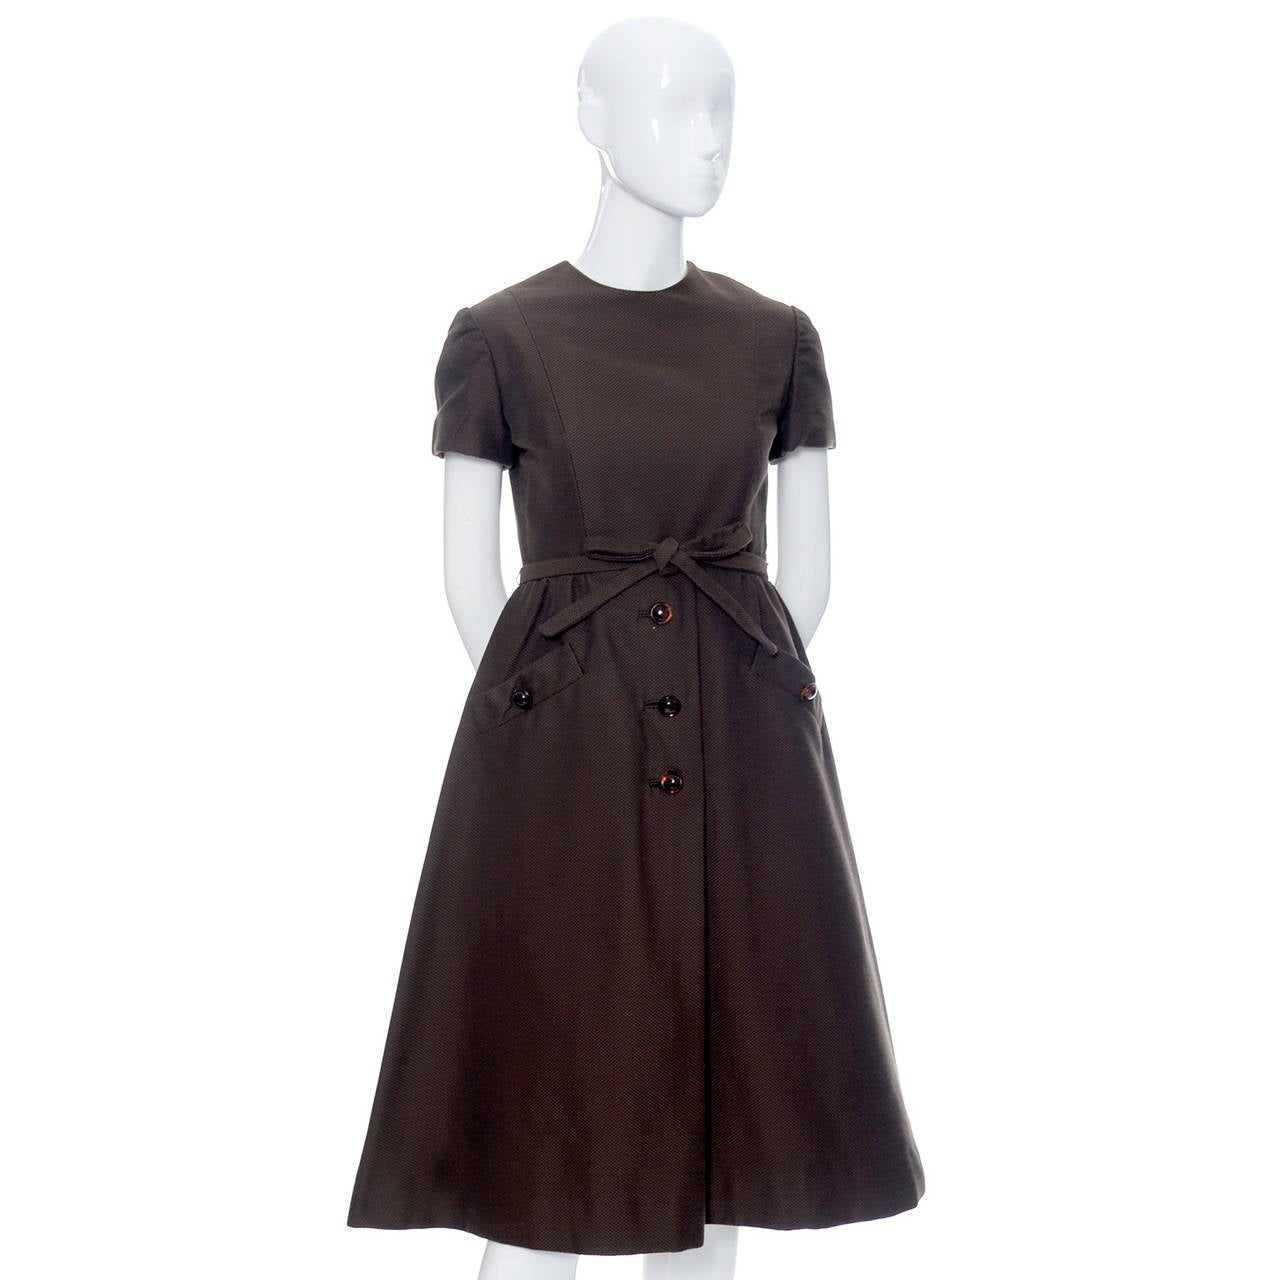 Chocolate Brown Geoffrey Beene 1960s Mod Vintage Dress Pockets Belt In Excellent Condition For Sale In Portland, OR